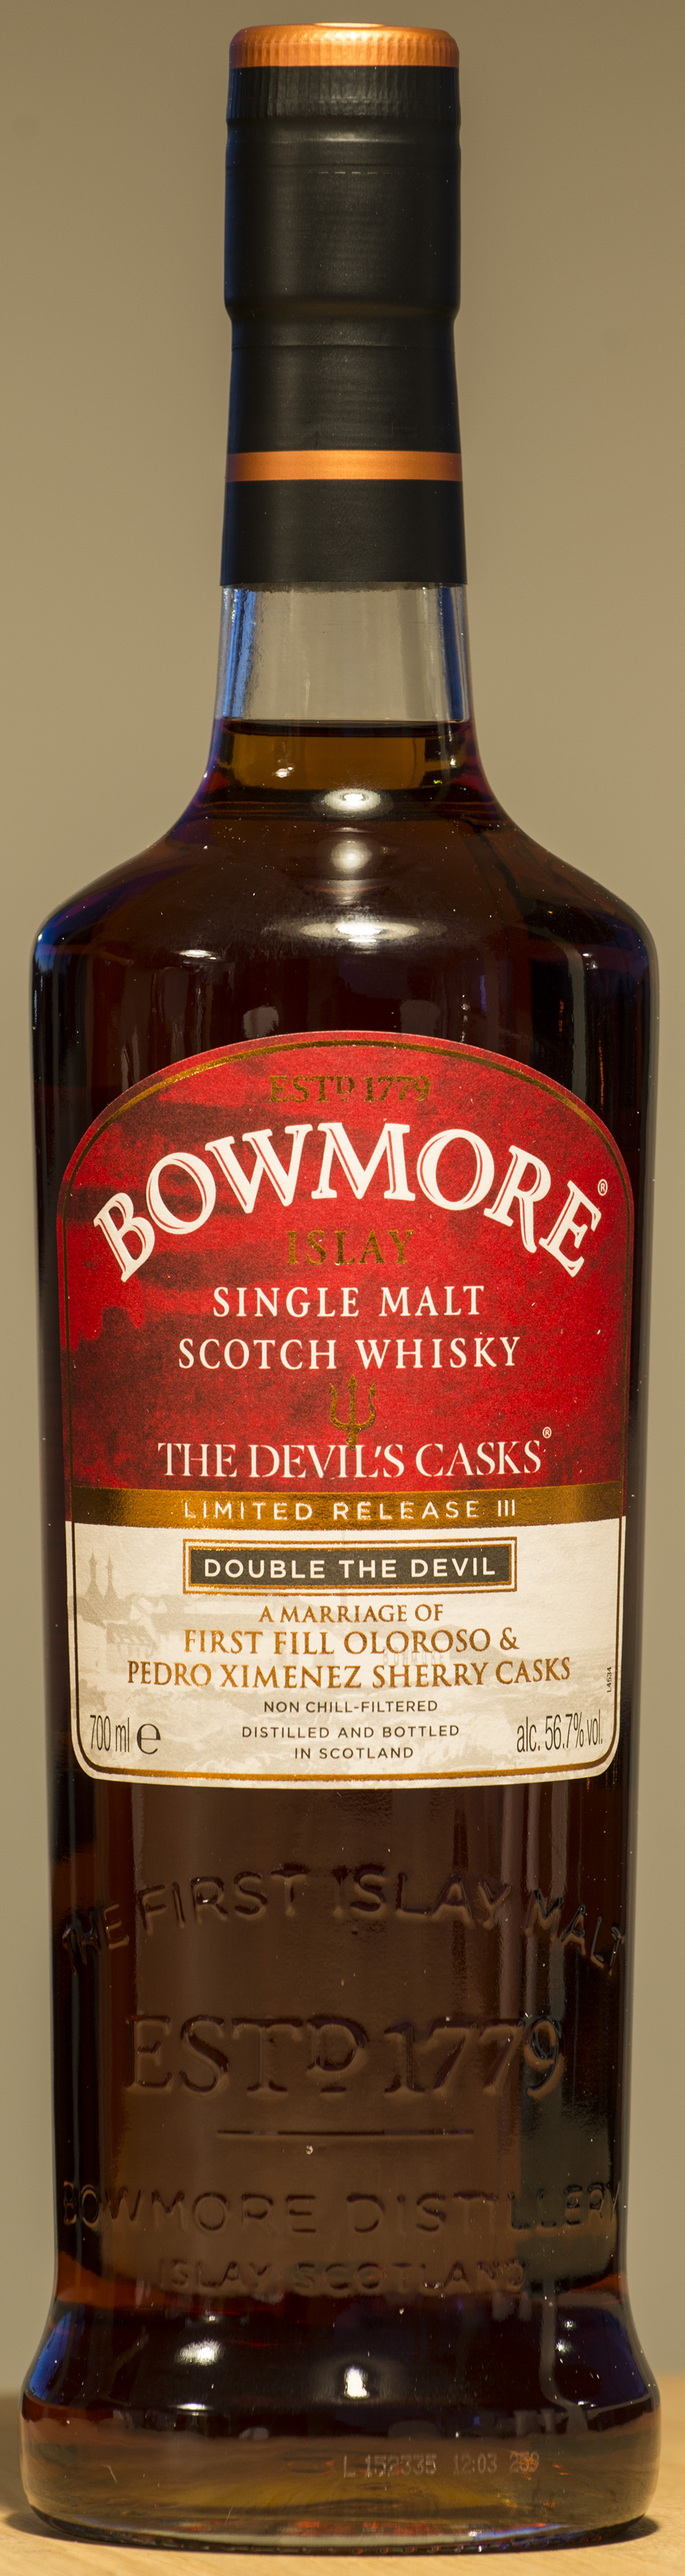 Billede: DSC_9079 - Bowmore Devils Cask Batch III - bottle front.jpg